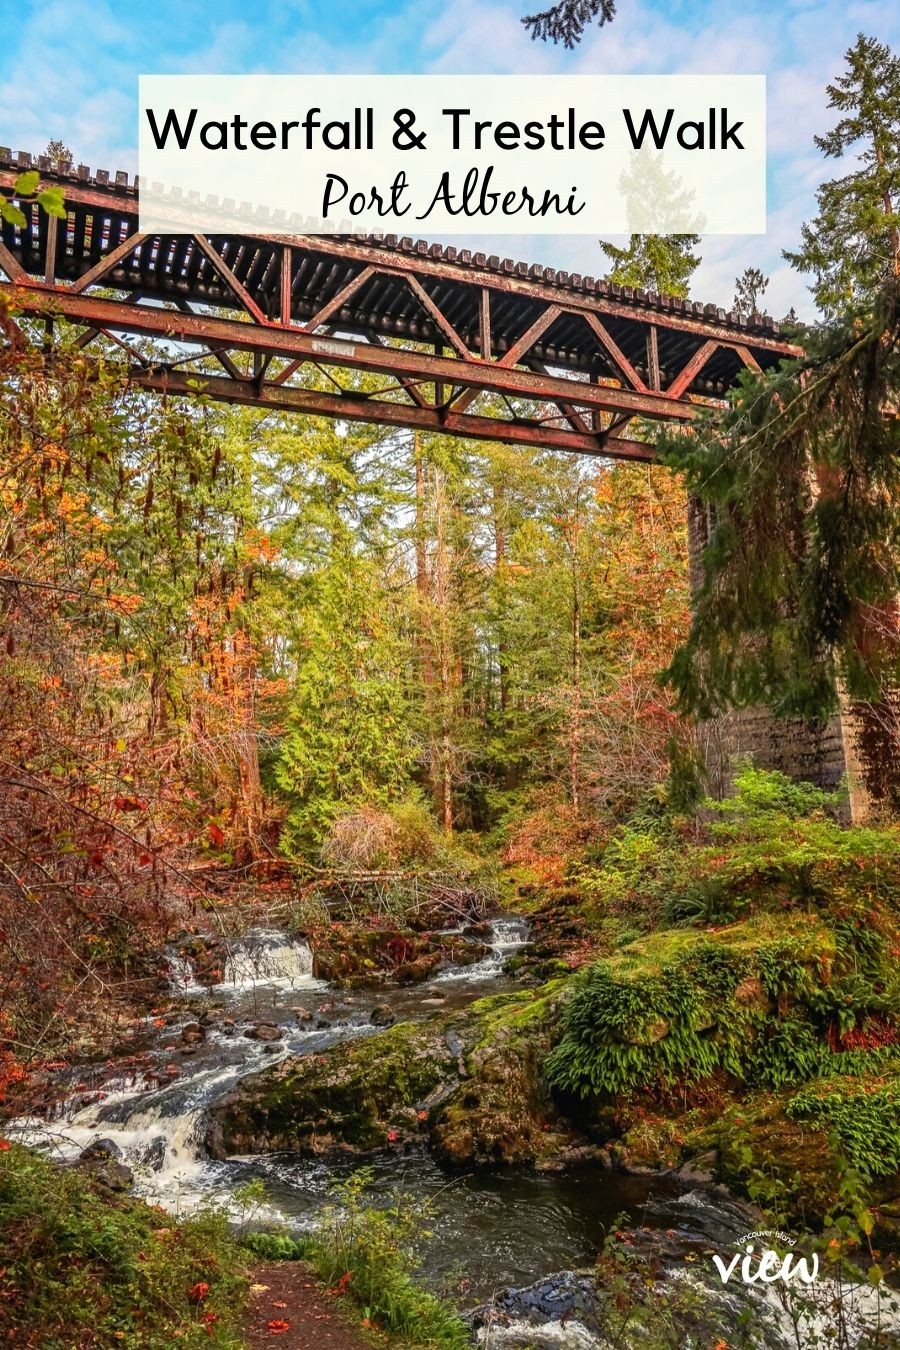 A beautiful waterfall and trestle walk in Port Alberni following the Kitsuksis Creek. Vancouver Island View.